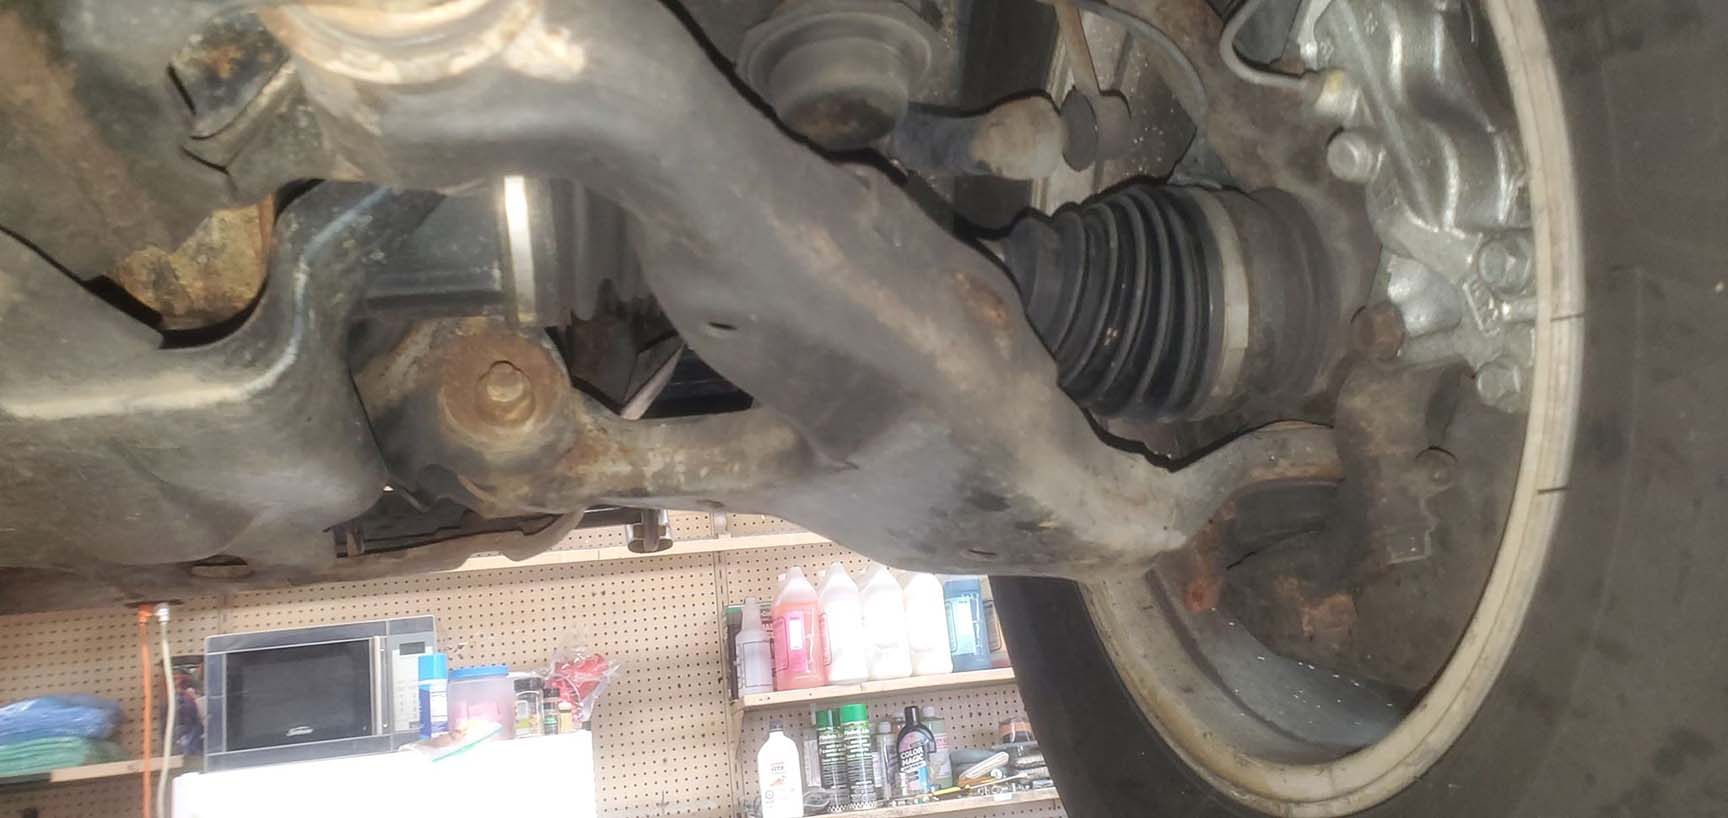 How much is too much rust on a 2006 4Runner?-83310460_639653593445977_3971386762021830656_n-smaller-jpg